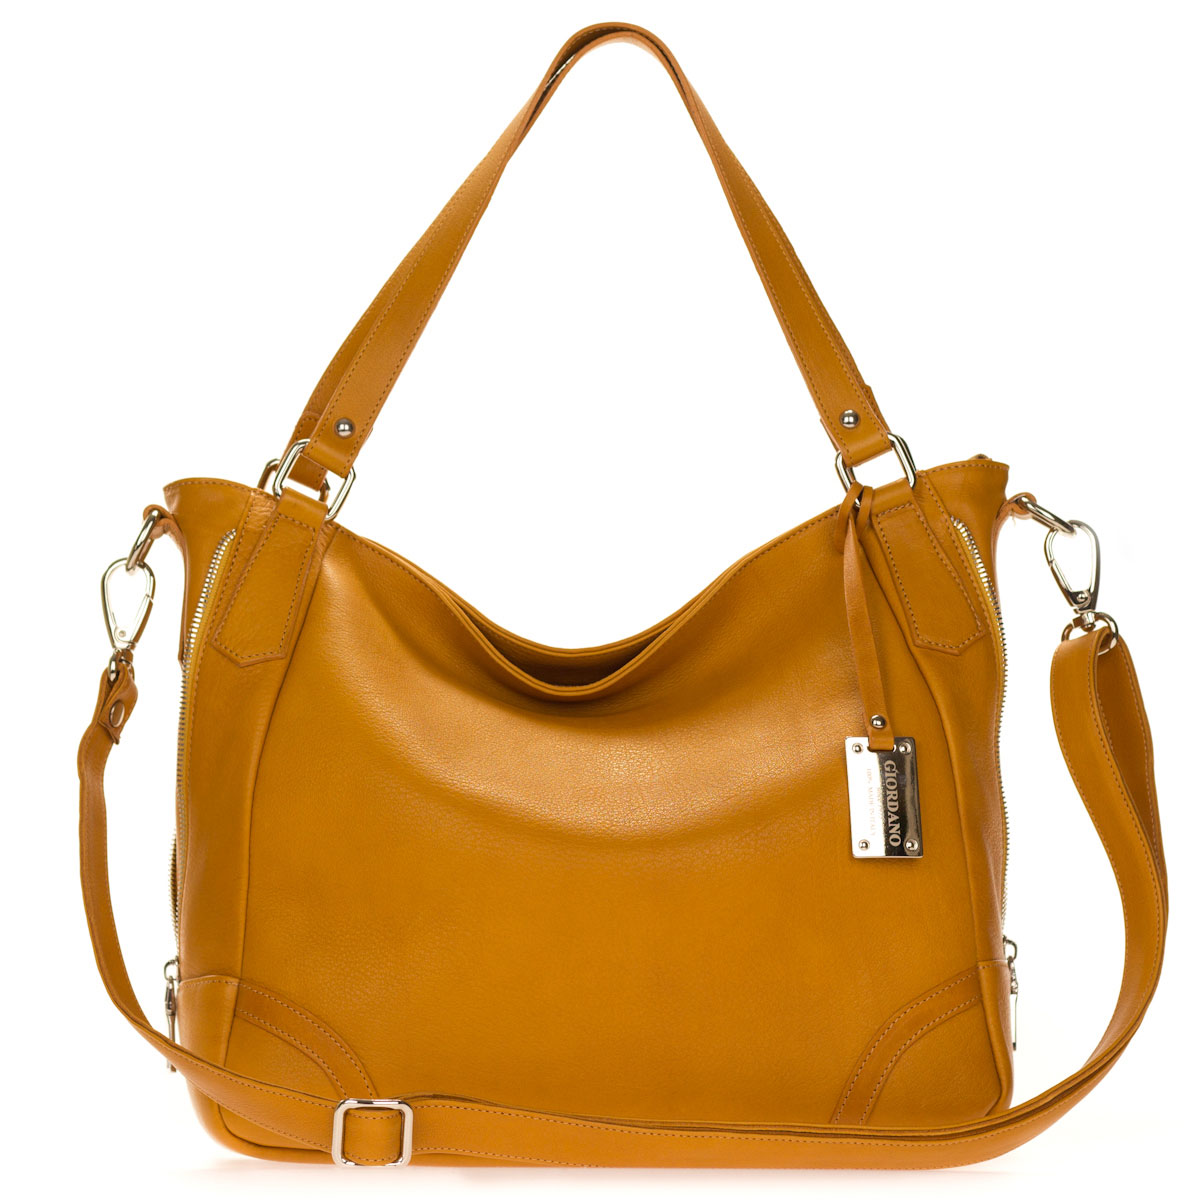 Shop Women's Totes At hitmixeoo.gq And Enjoy Free Shipping & Returns On All Orders.